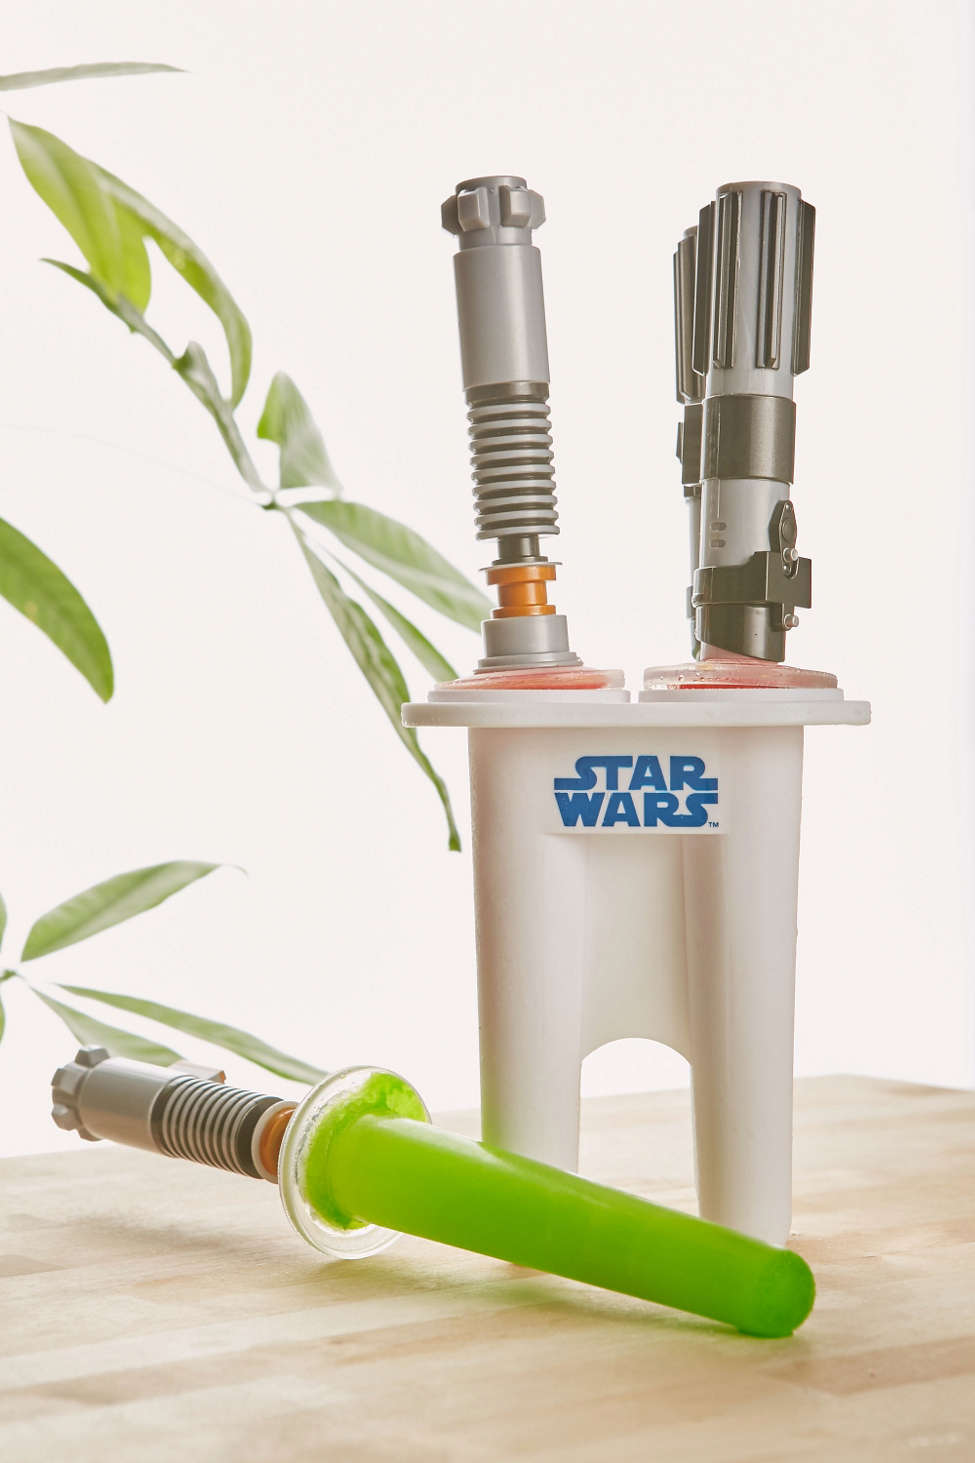 Star Wars - Light Saber Ice Pops